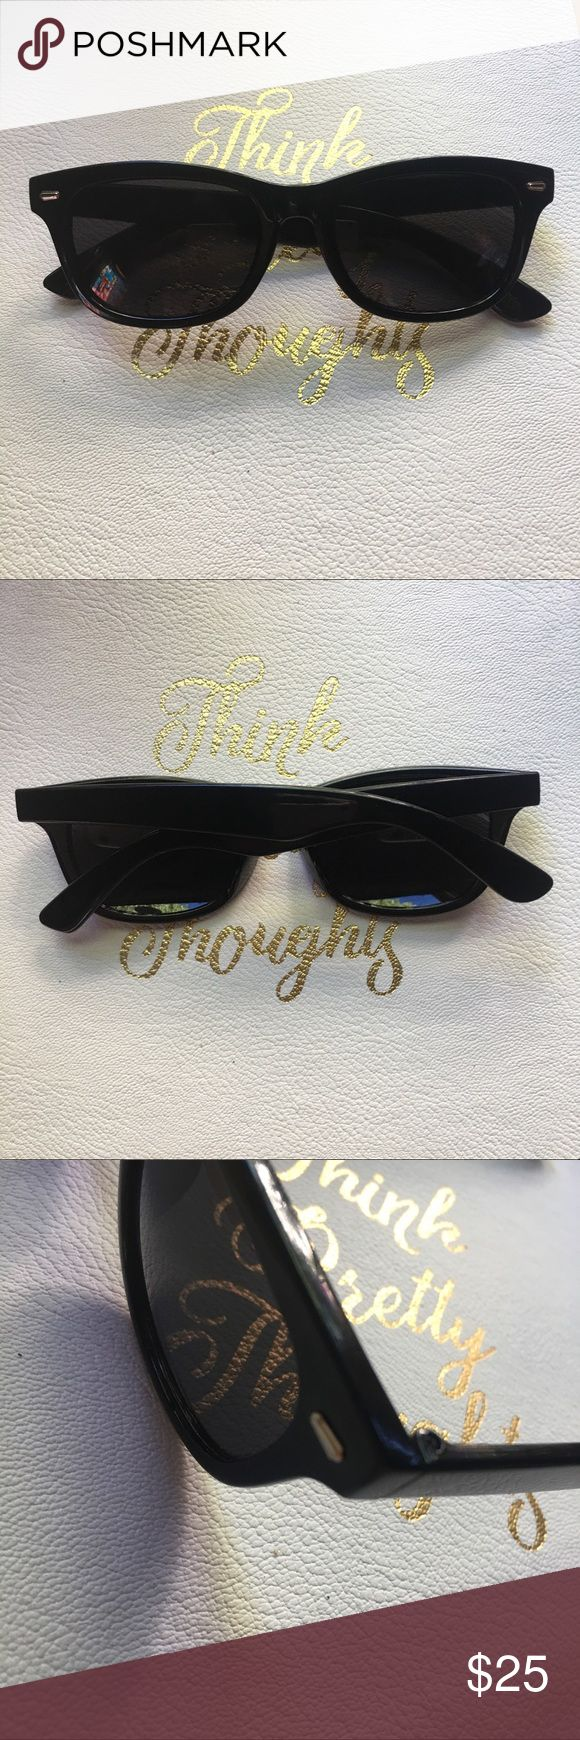 ✨Brand New Wayfarer Sunglasses✨ ✨Brand new Wayfarer style sunglasses. Brand name listing for exposure only.Reasonable Offers Accepted! 10 % off all bundles of two or more items! SAME DAY SHIPPING ON ALL ORDERS BOUGHT BEFORE 2 pm PST✨✨ Ray-Ban Accessories  https://tmblr.co/Z8_dwd2LZHiV4